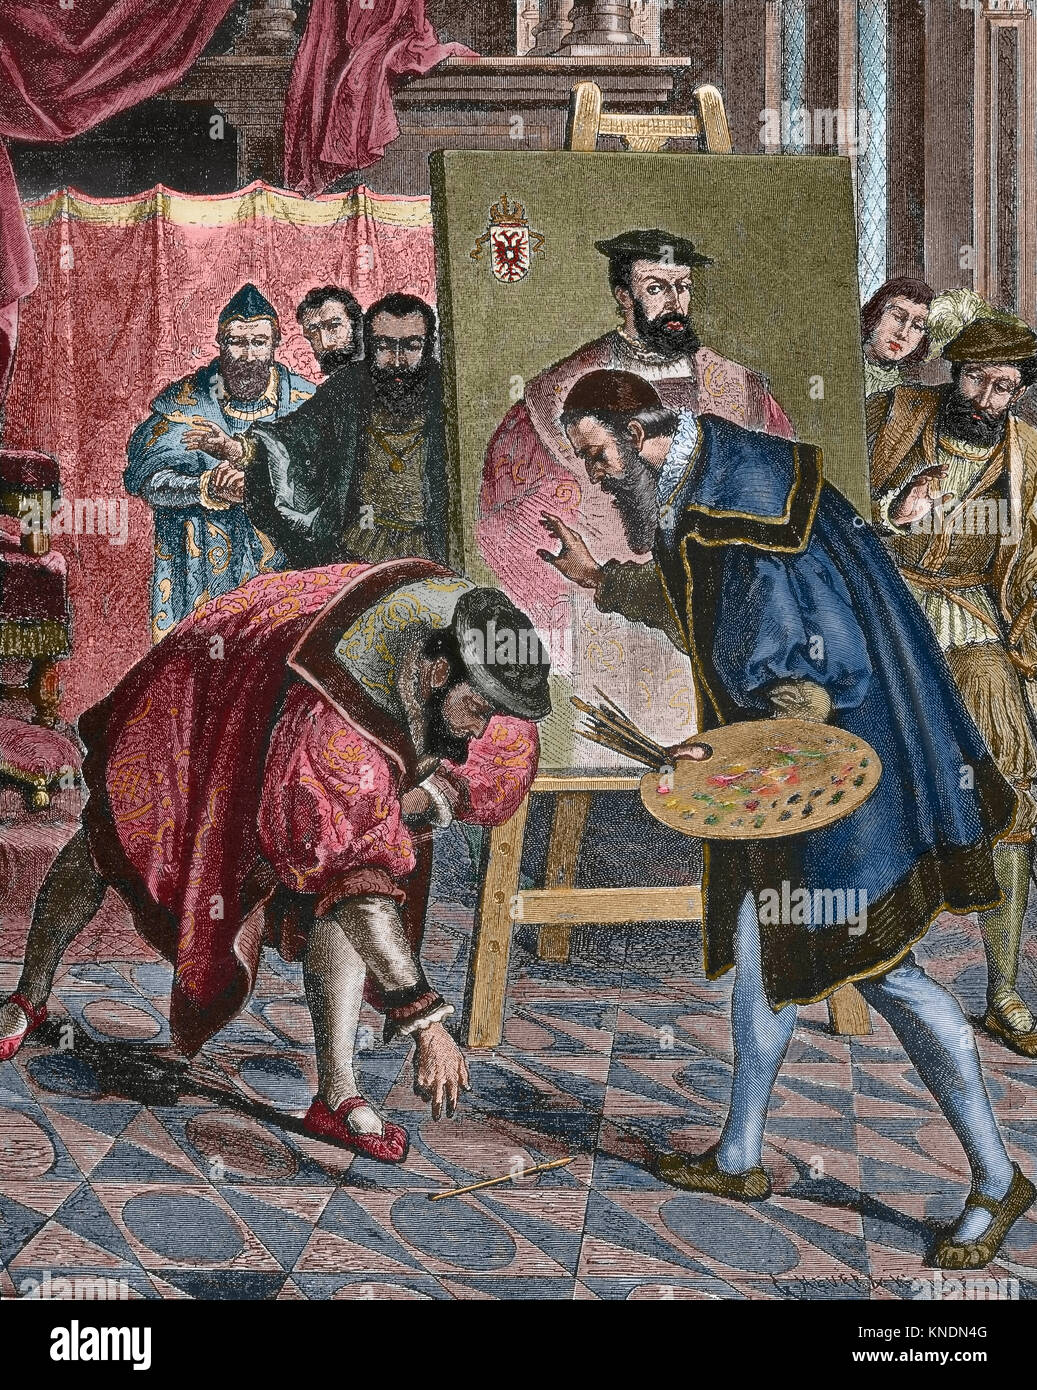 Charles V (1500-1558), King of Spain (1517-1556) and Holy Roman Emperor  (1519-1556), picks up the brush from Titian - Stock Image